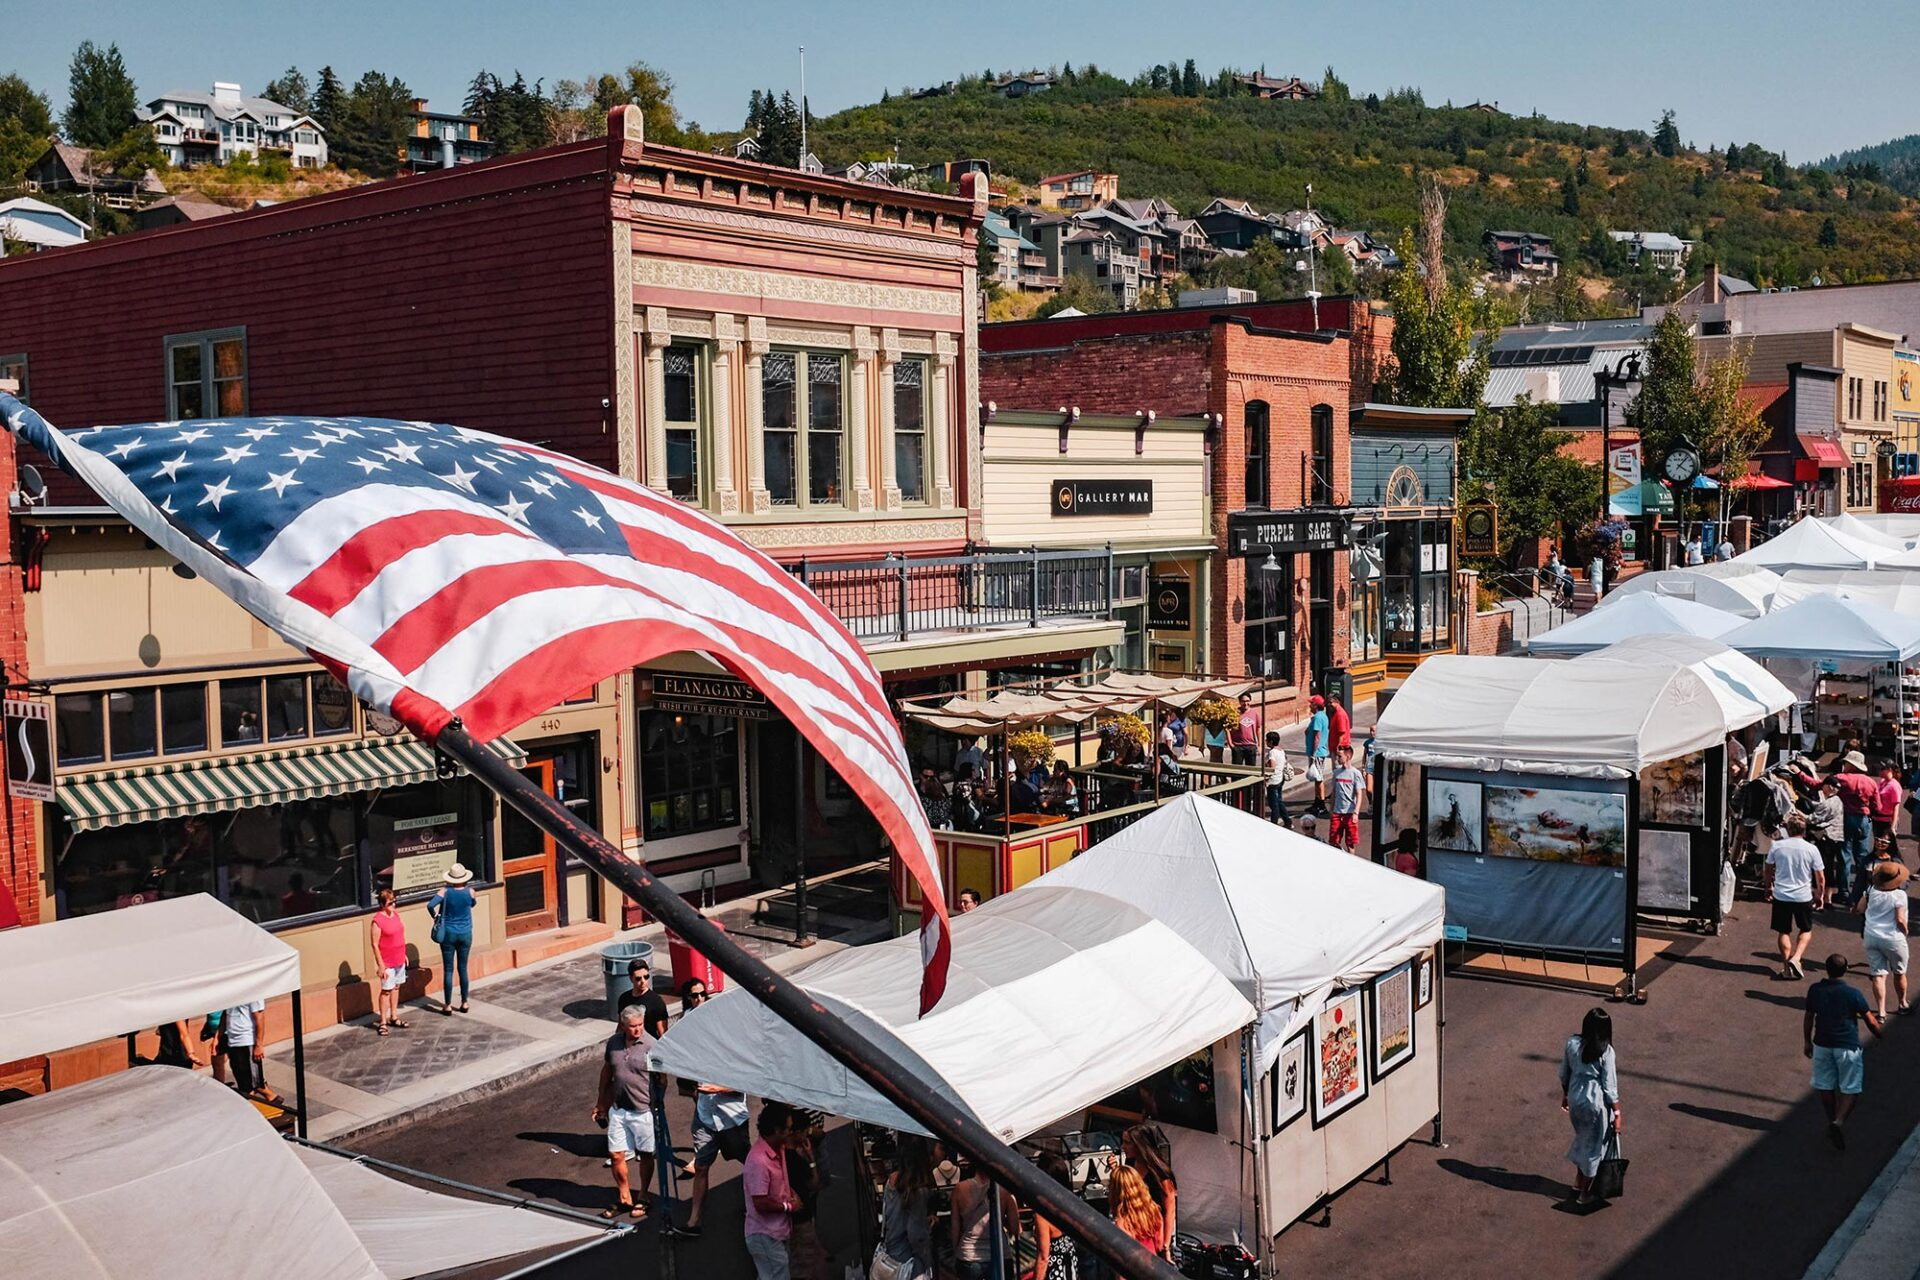 American Flag Waves Over Main Street Park City